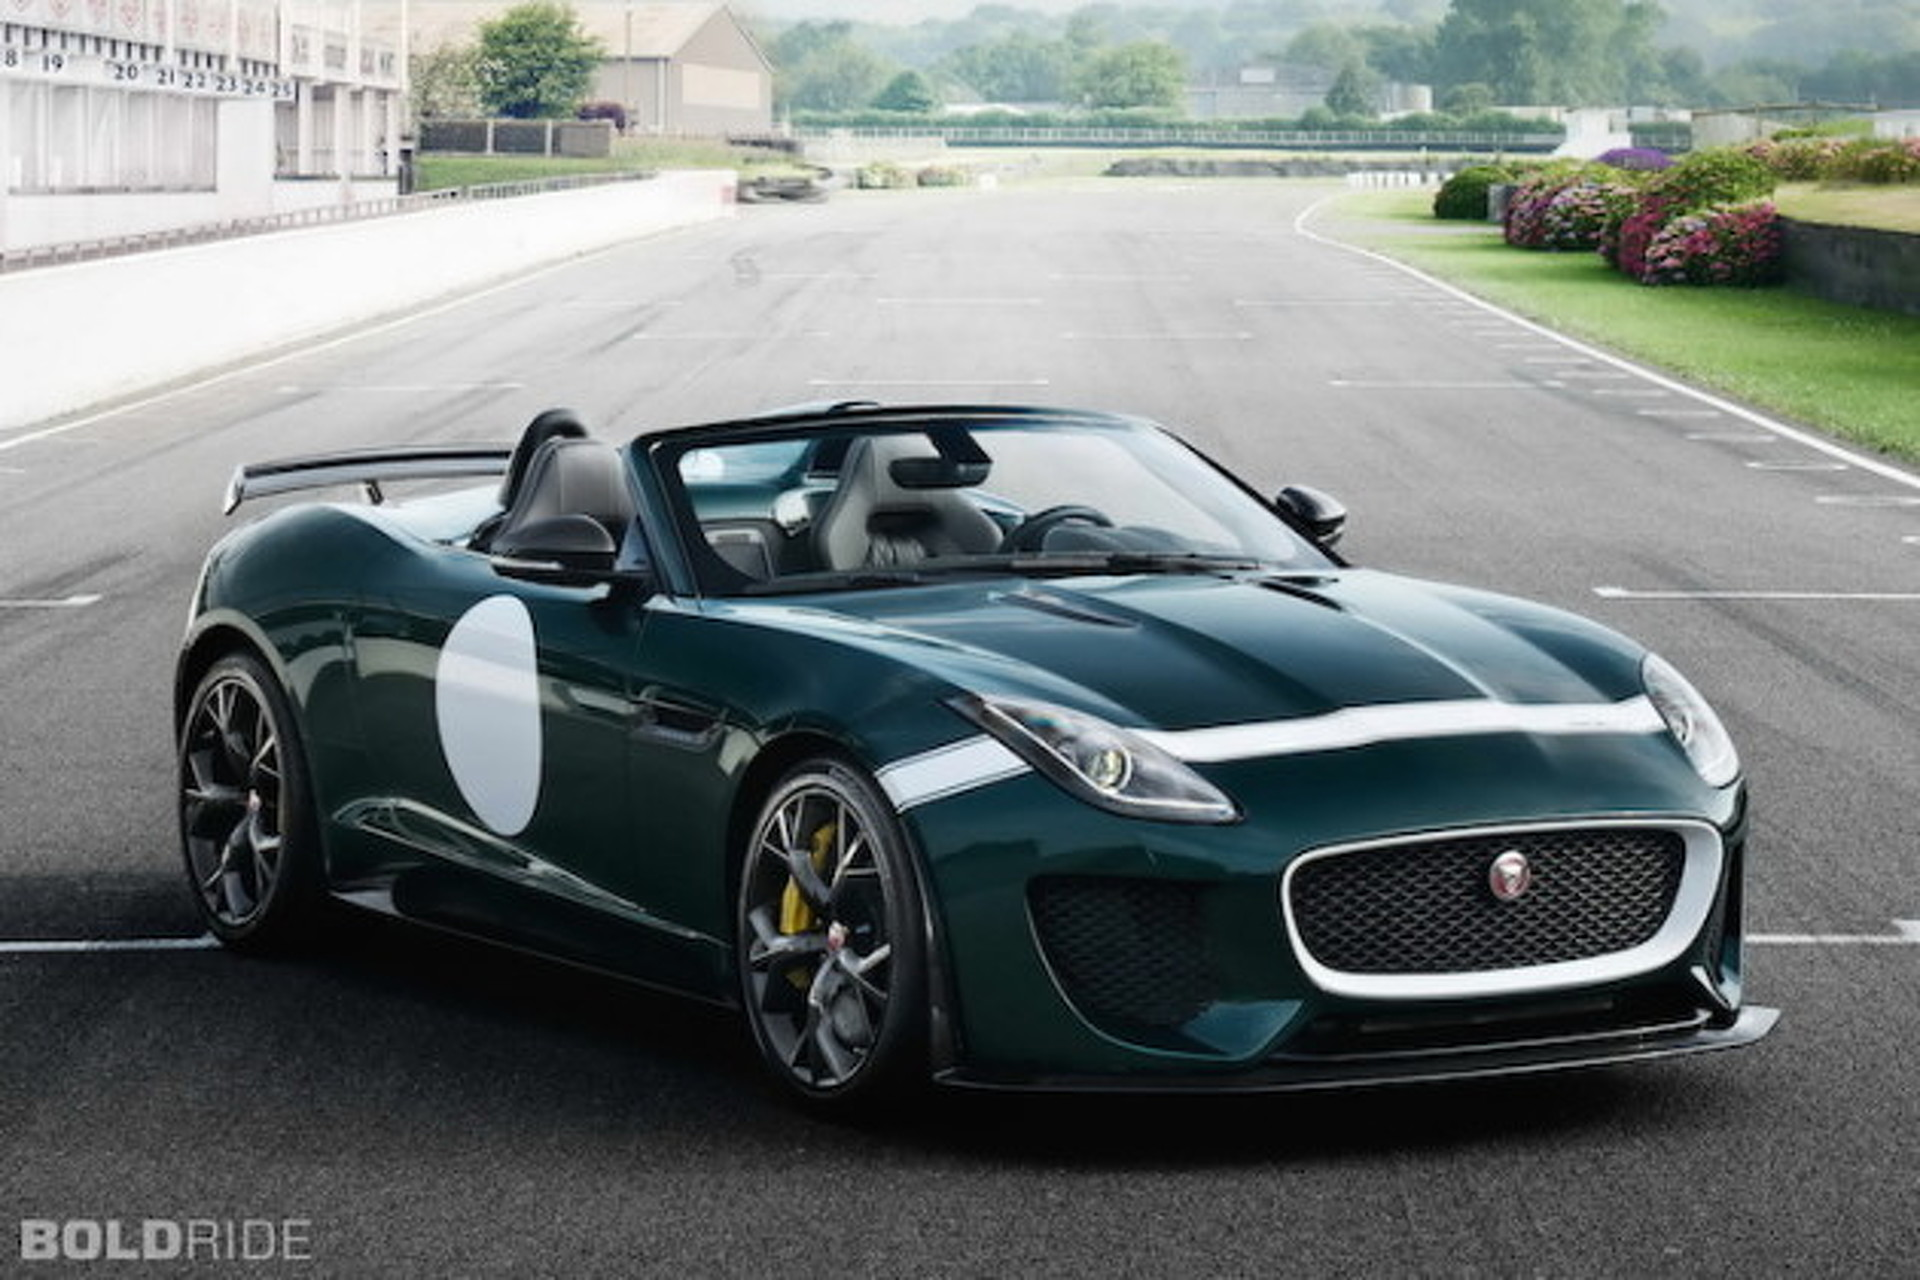 Jaguar Plotting A Lighter F-Type with C-X75 Powertrain